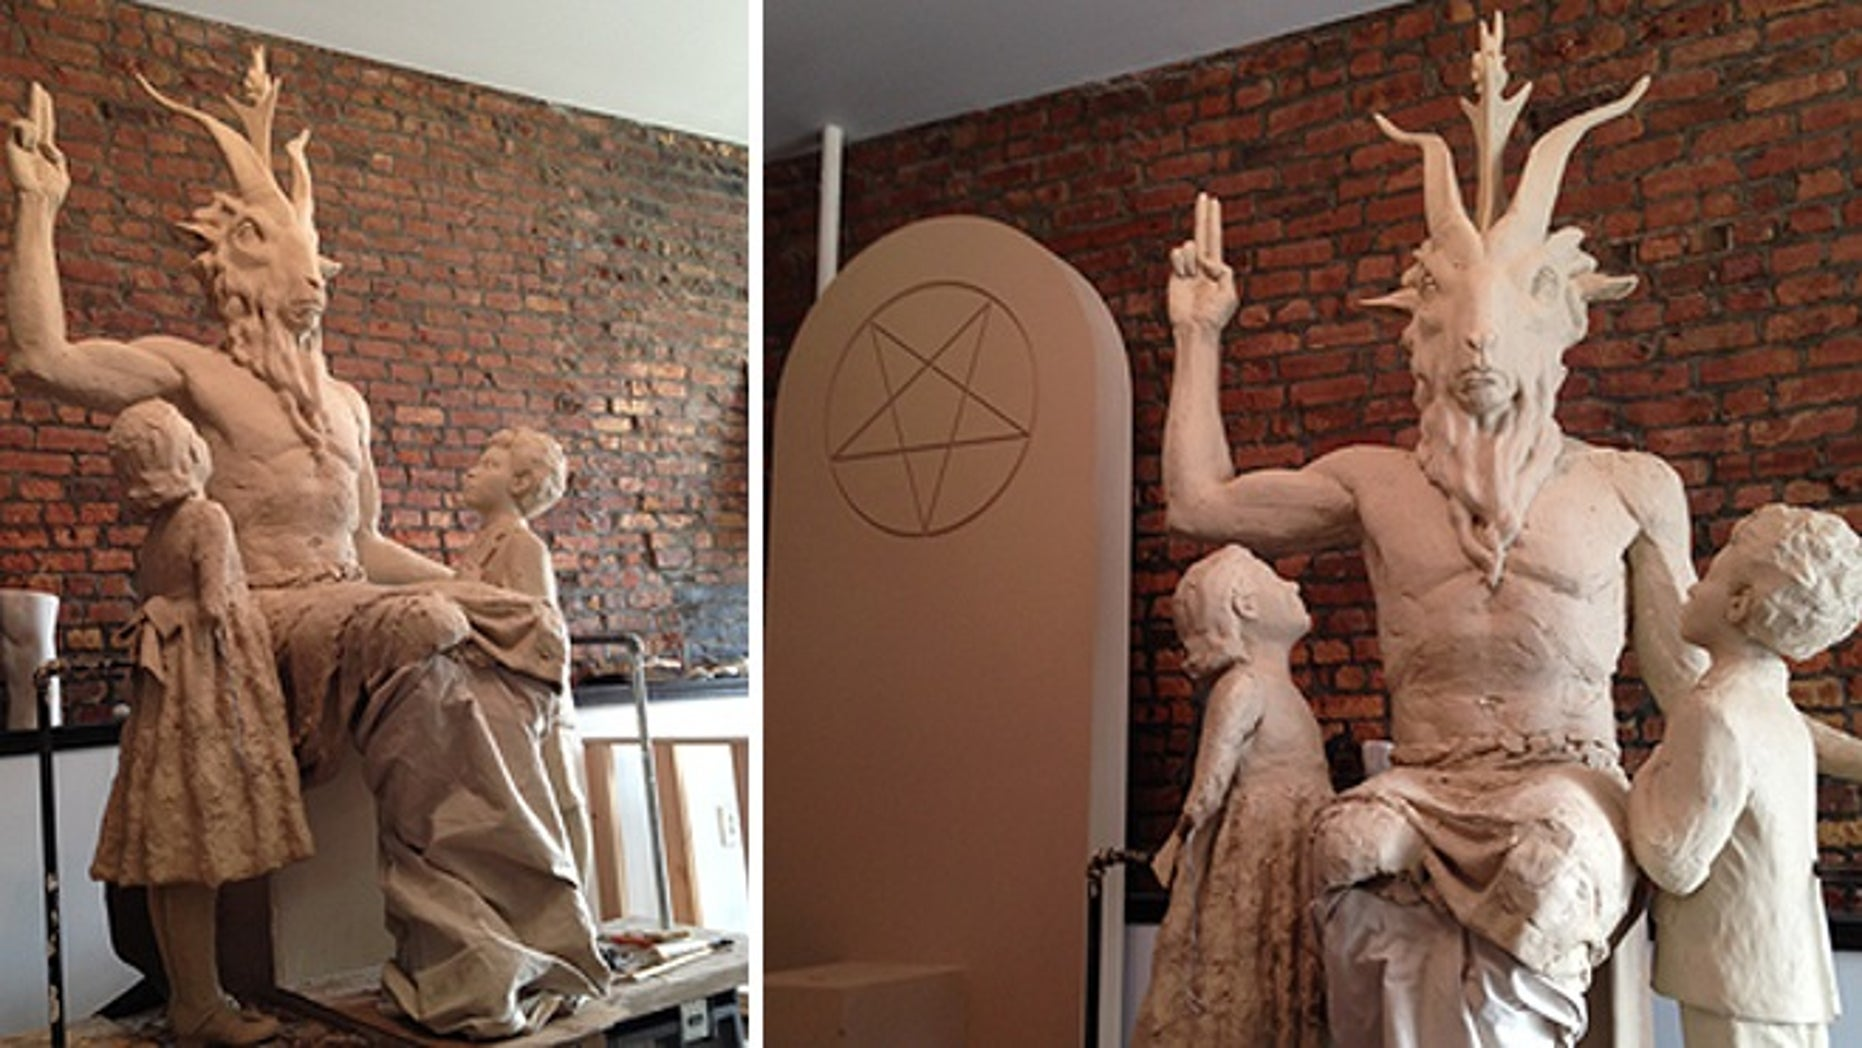 Oklahoma officials have no intention of allowing this statue of Satan to be placed on the Statehouse lawn.